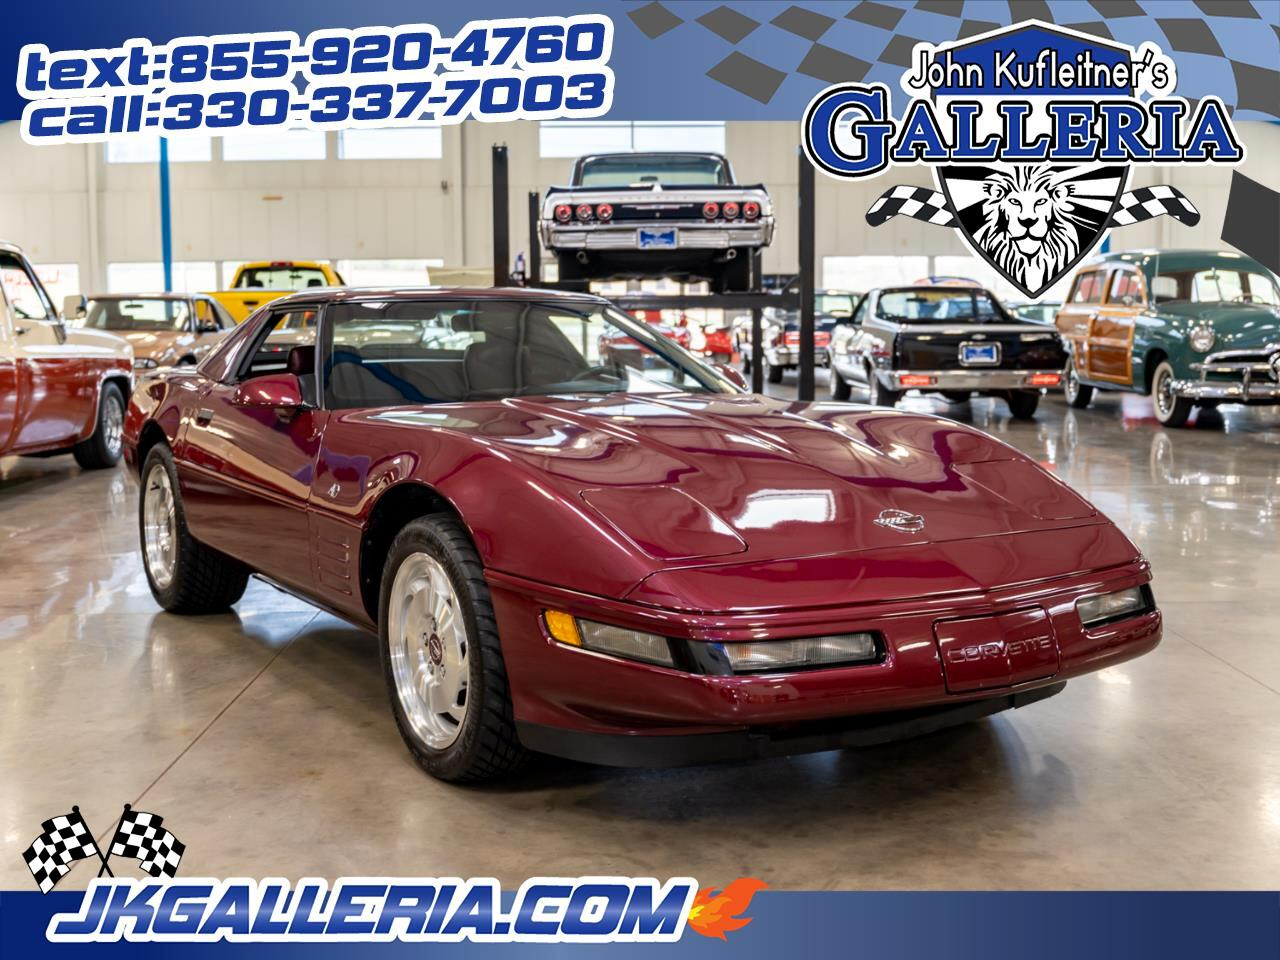 Chevrolet Corvette 2dr Convertible 1993